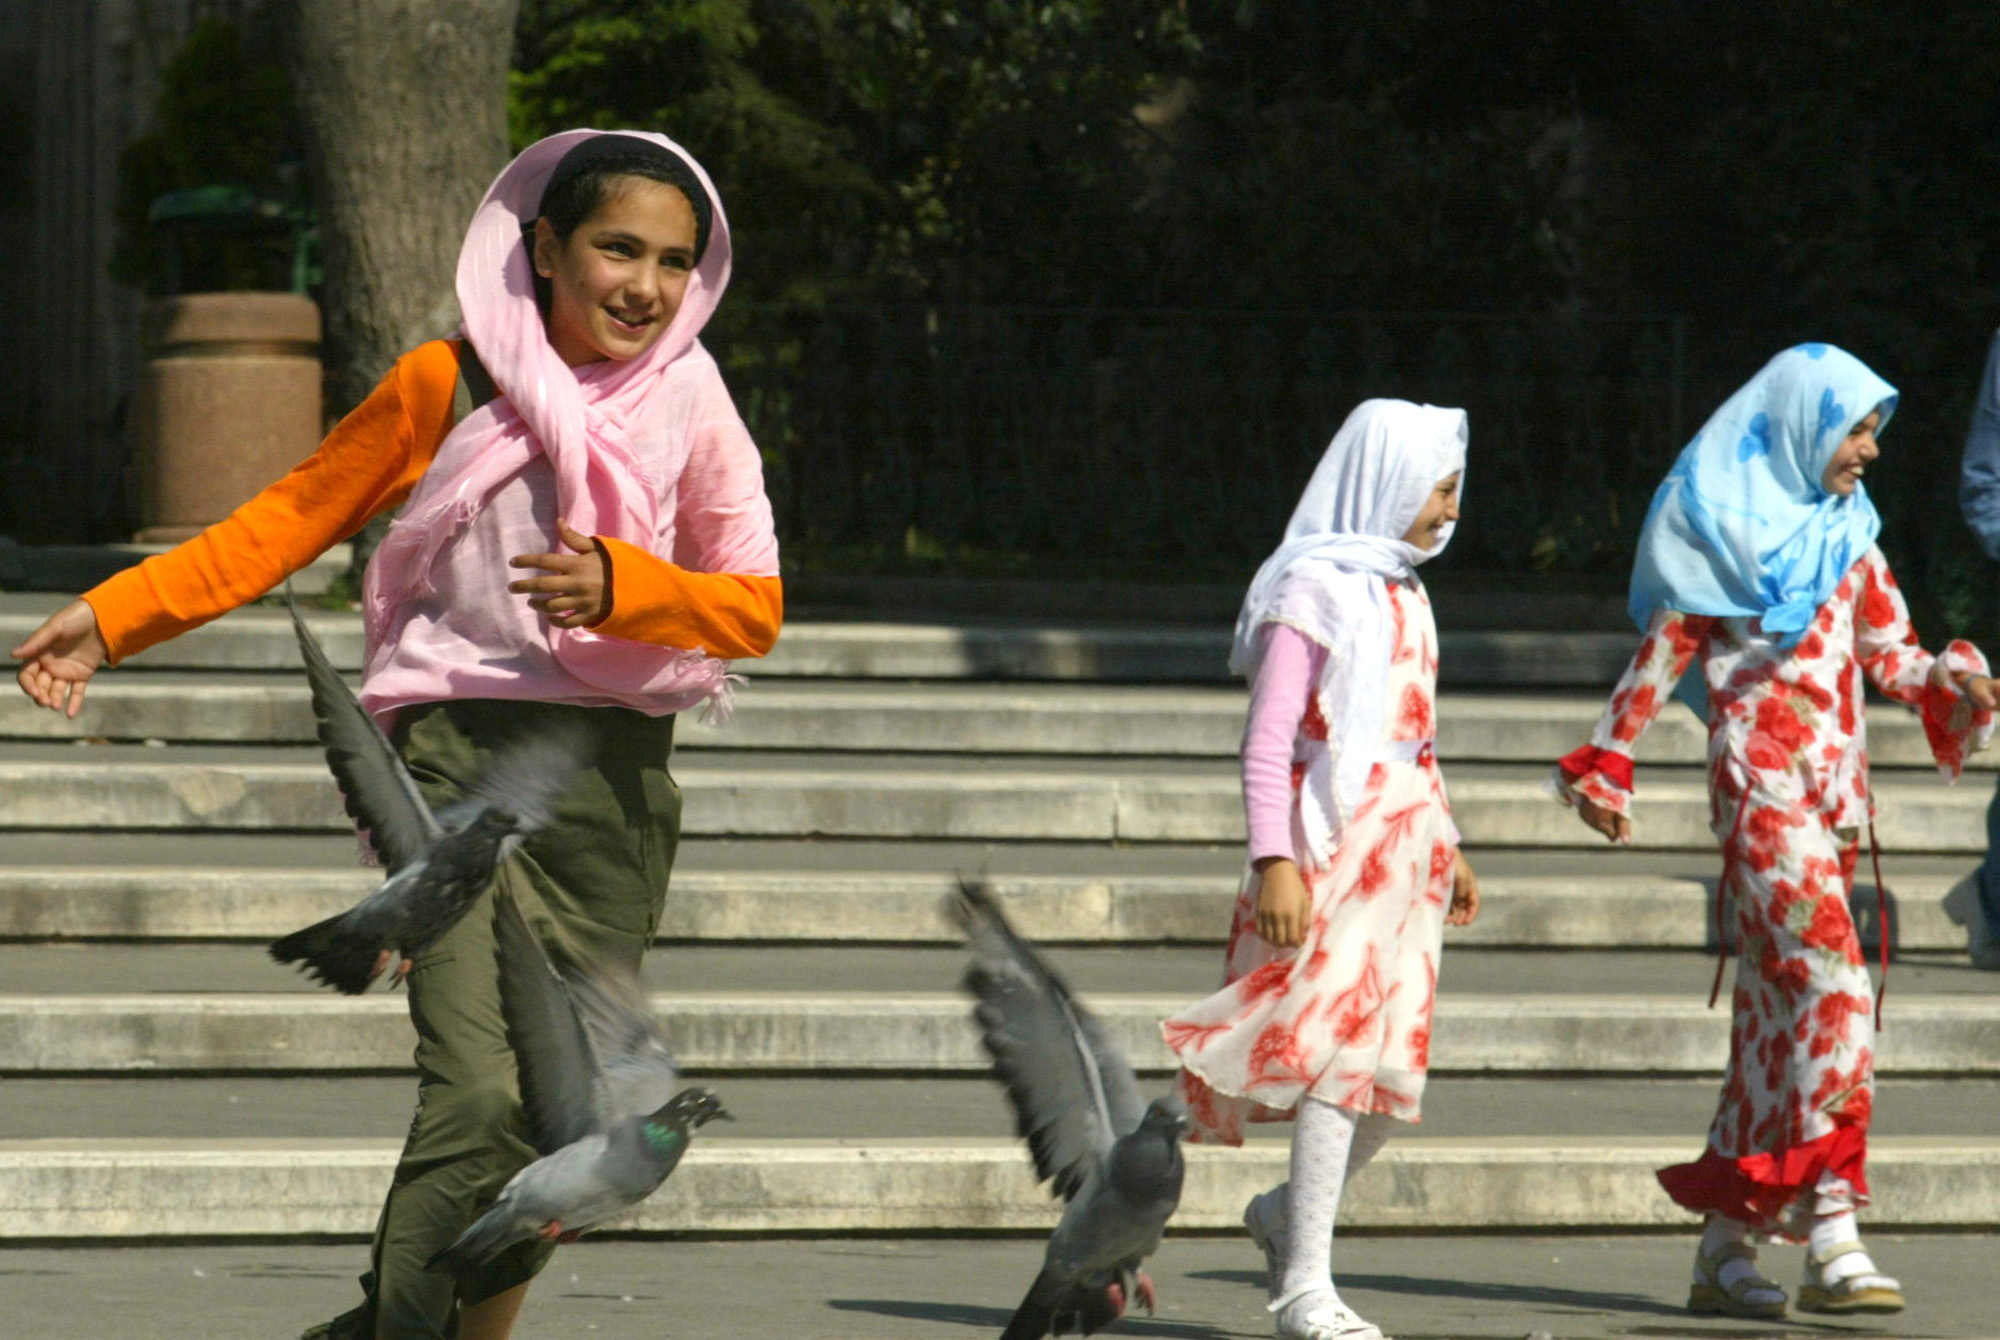 ILLUSTRATIVE Girls wearing Islamic headscarves play in a park in Istanbul Turkey